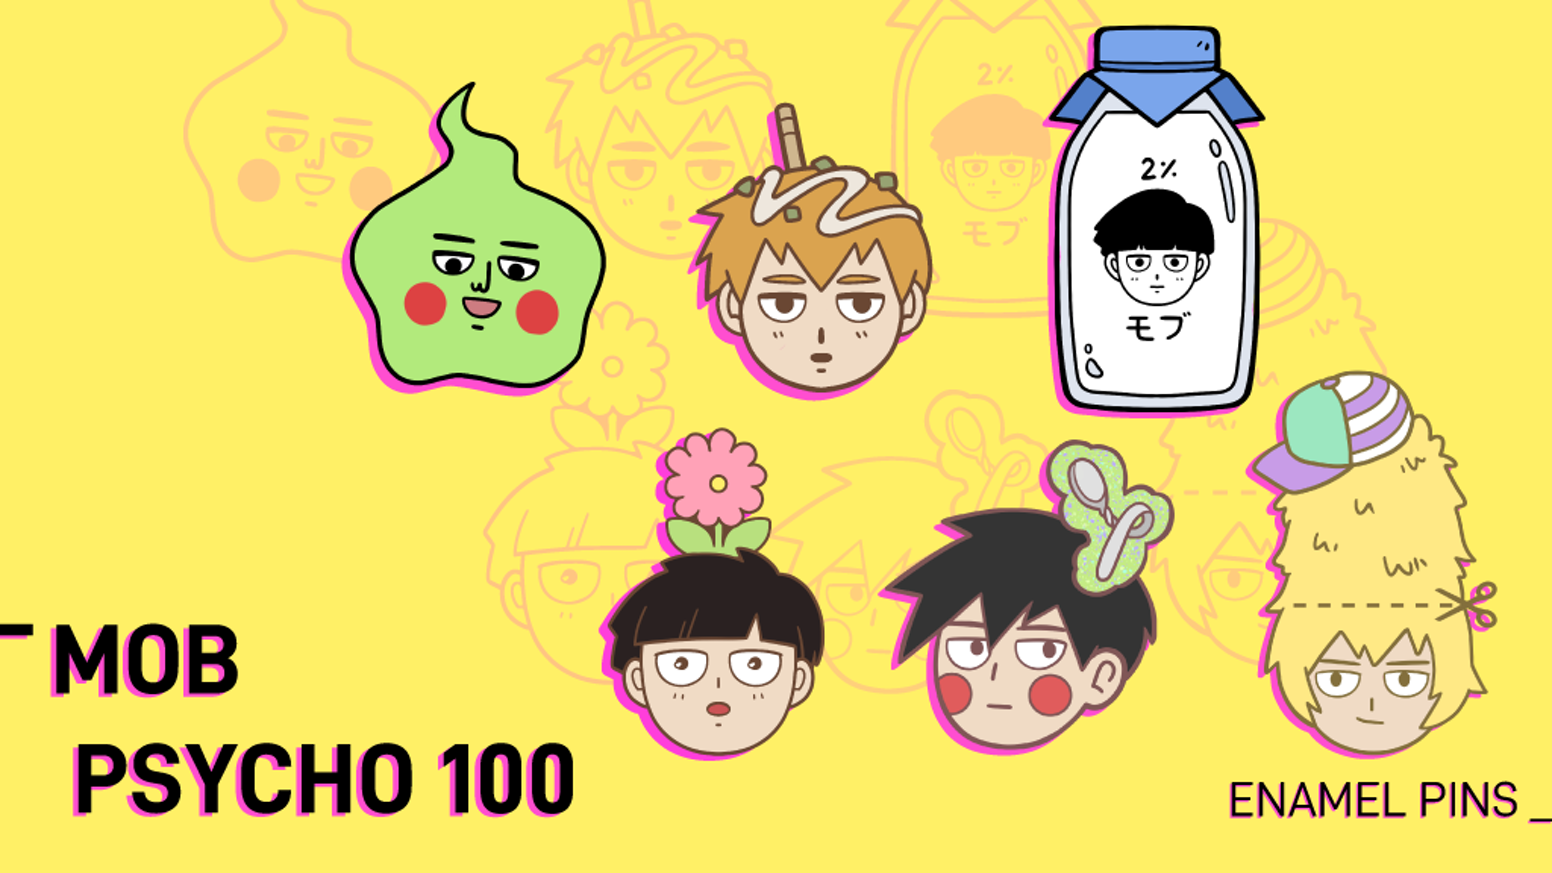 Enamel pins designed based off Mob Psycho 100.